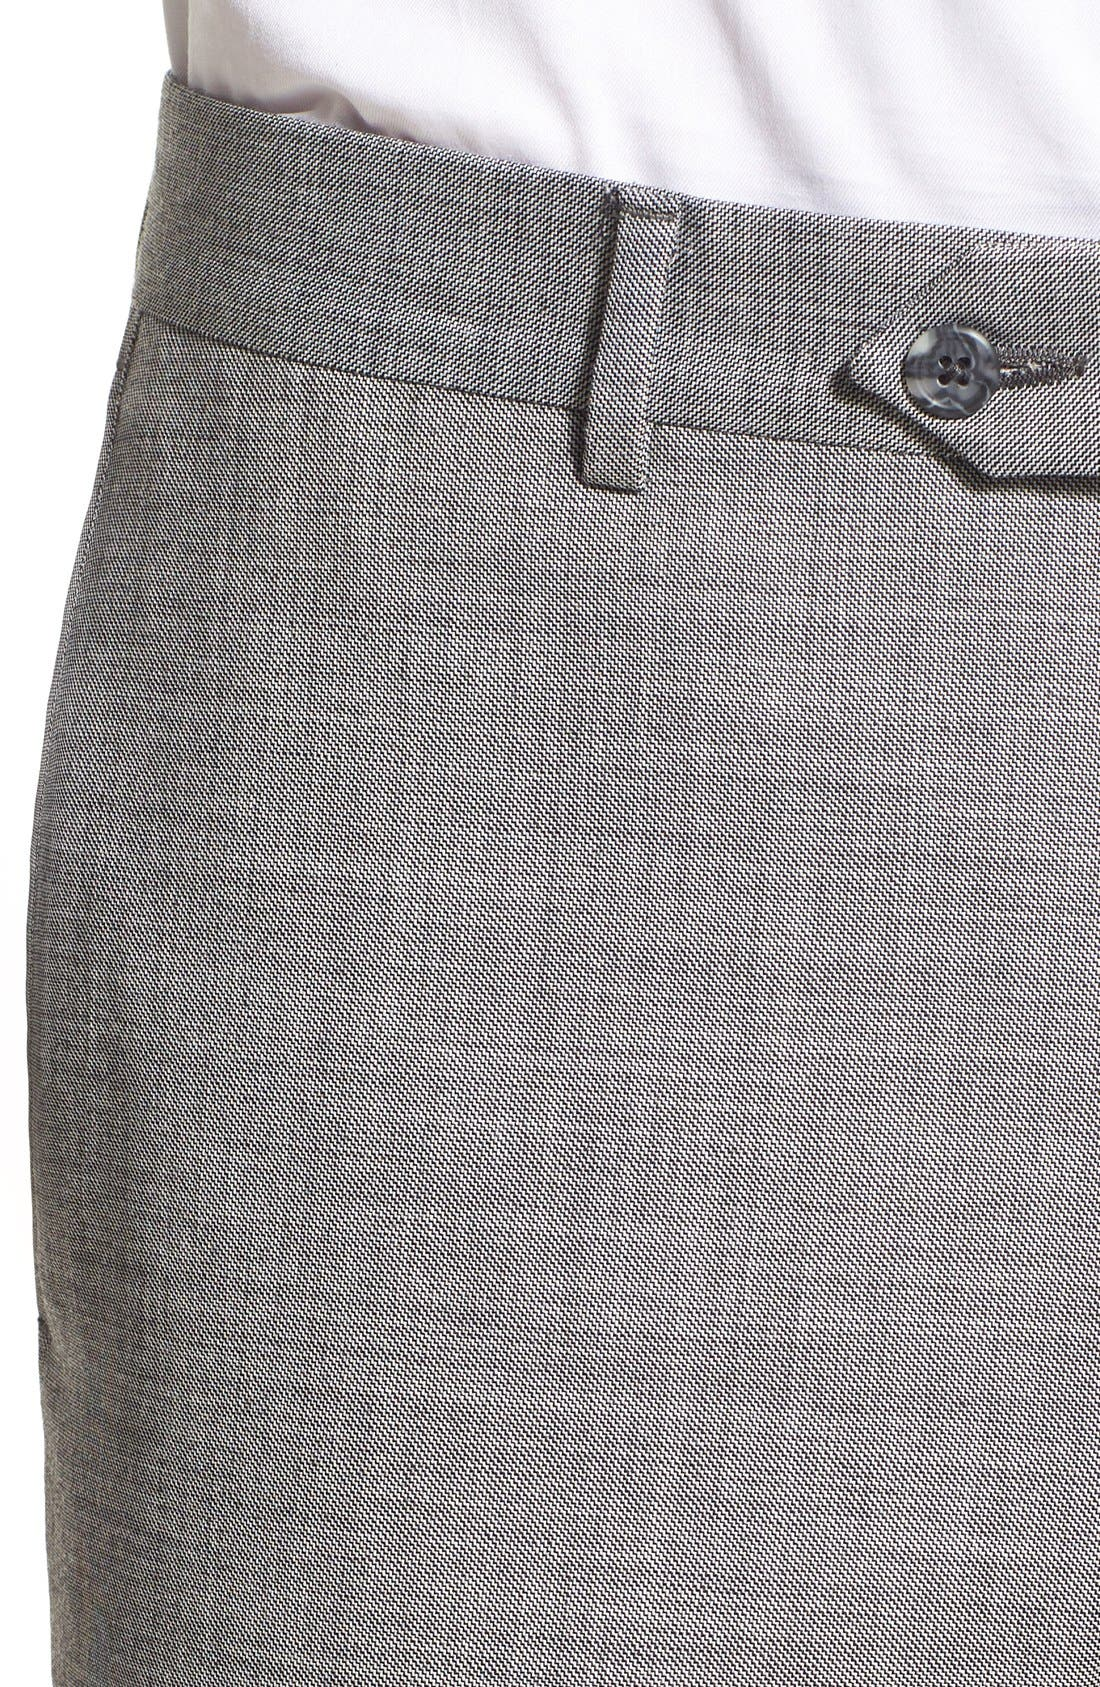 Alternate Image 5  - Nordstrom Men's Shop Flat Front Sharkskin Wool Trousers